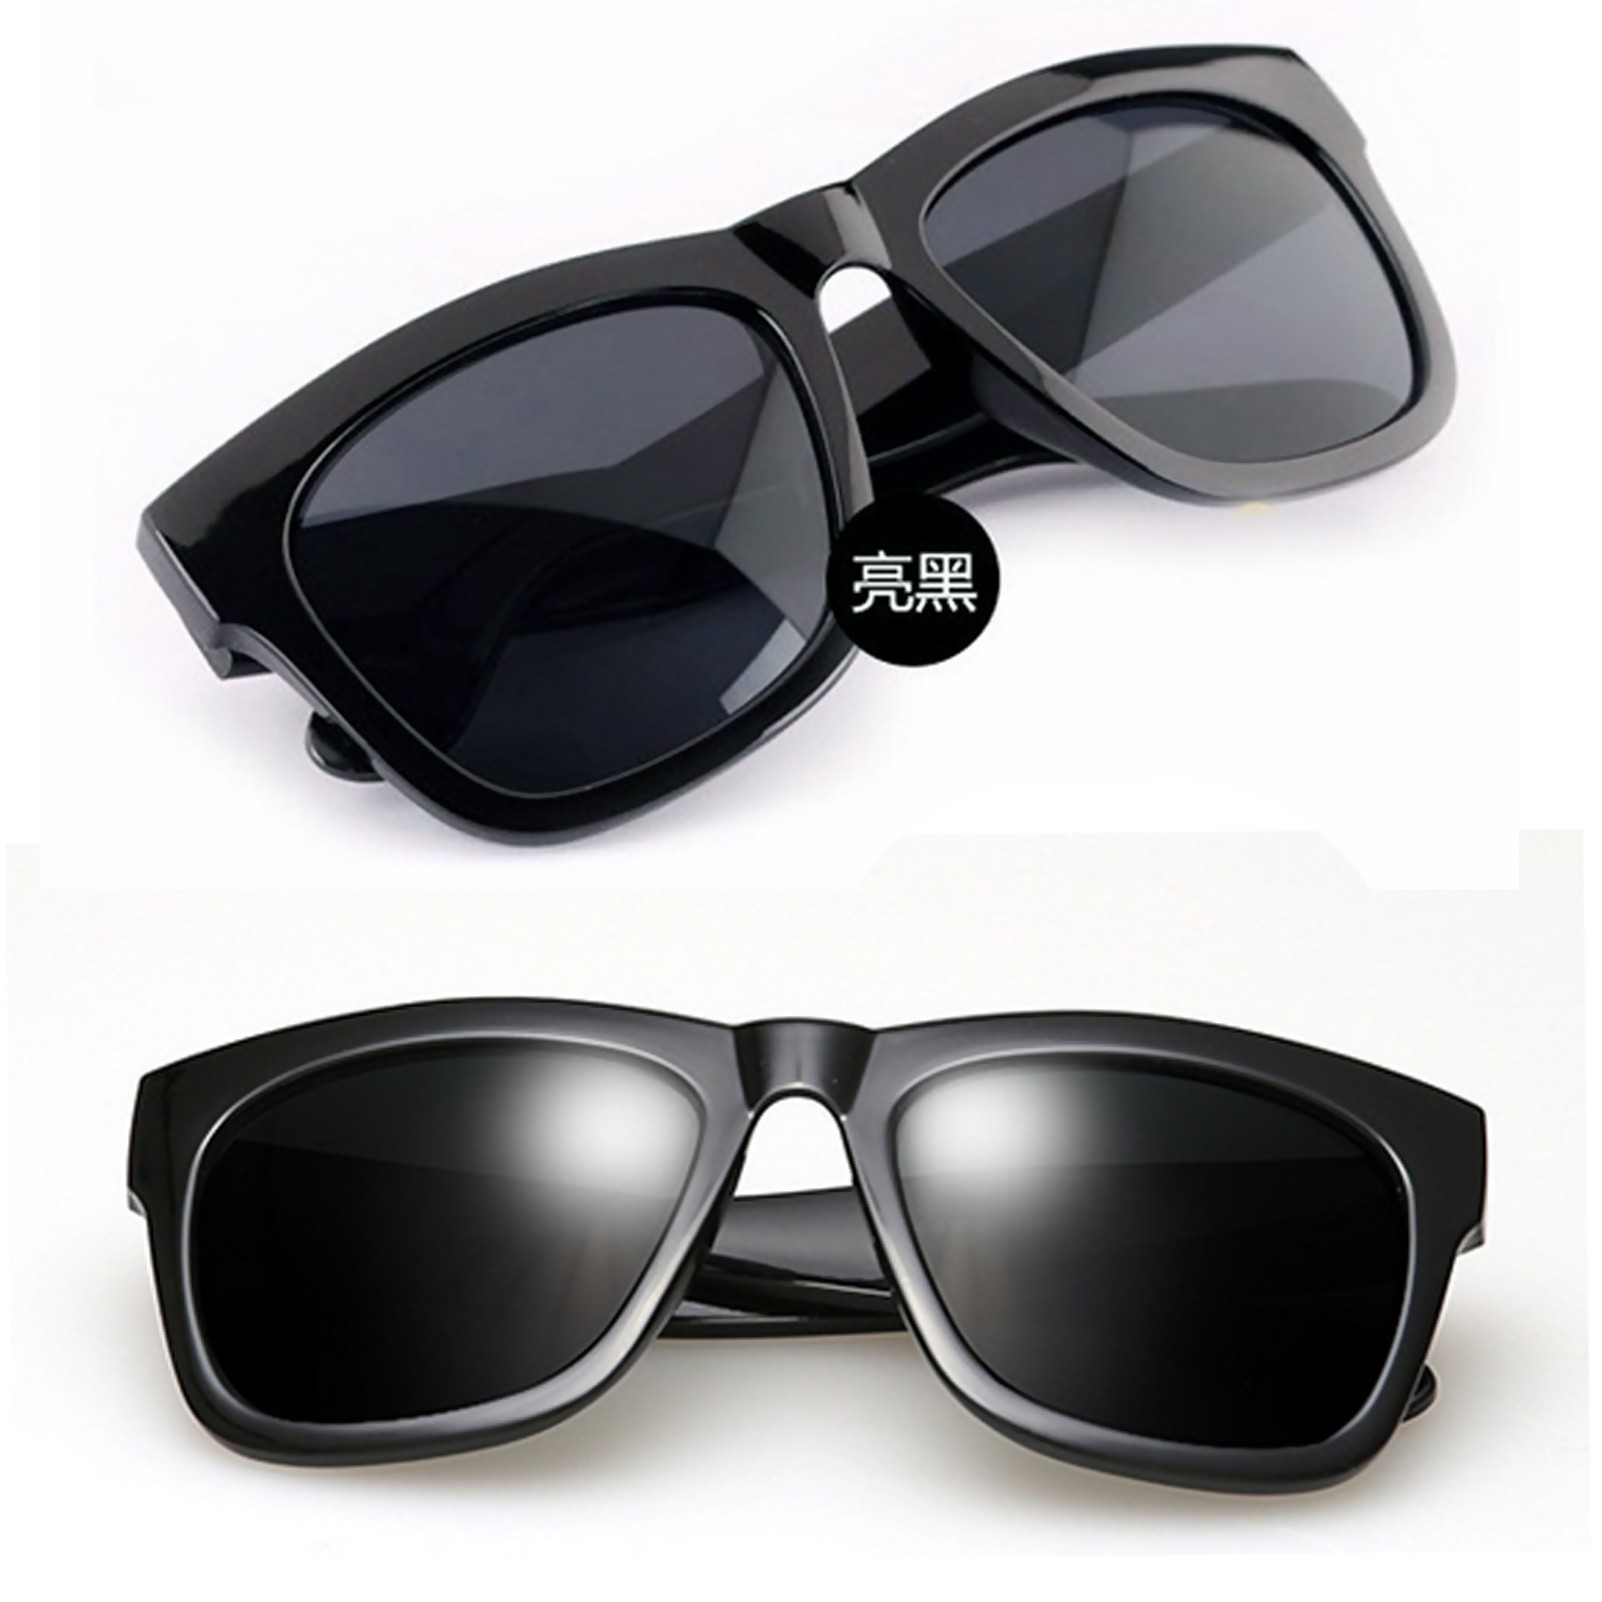 designer sunglasses men 3ar2  Bright Black Frame Women's Men's Wayfarer Flat Style Shades Designer  Sunglasses